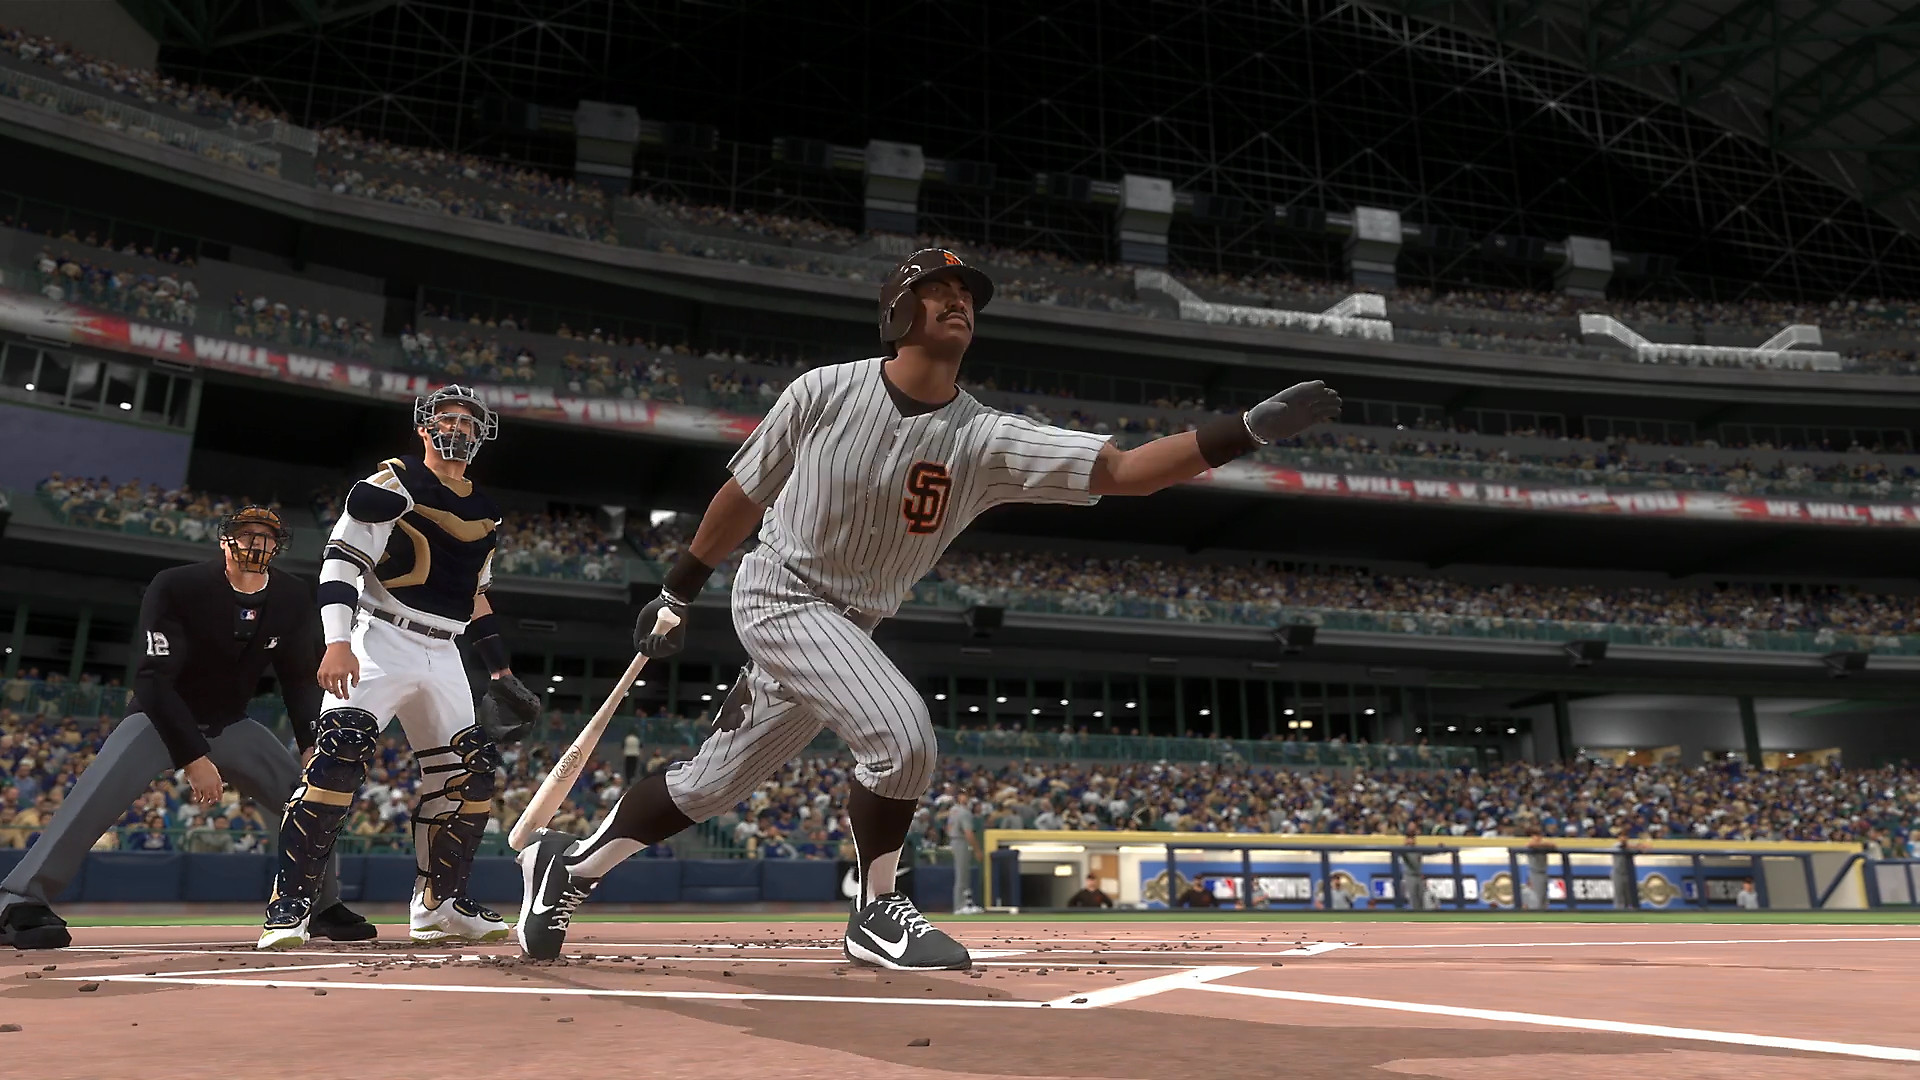 mlb the show 21 game wallpaper 74004